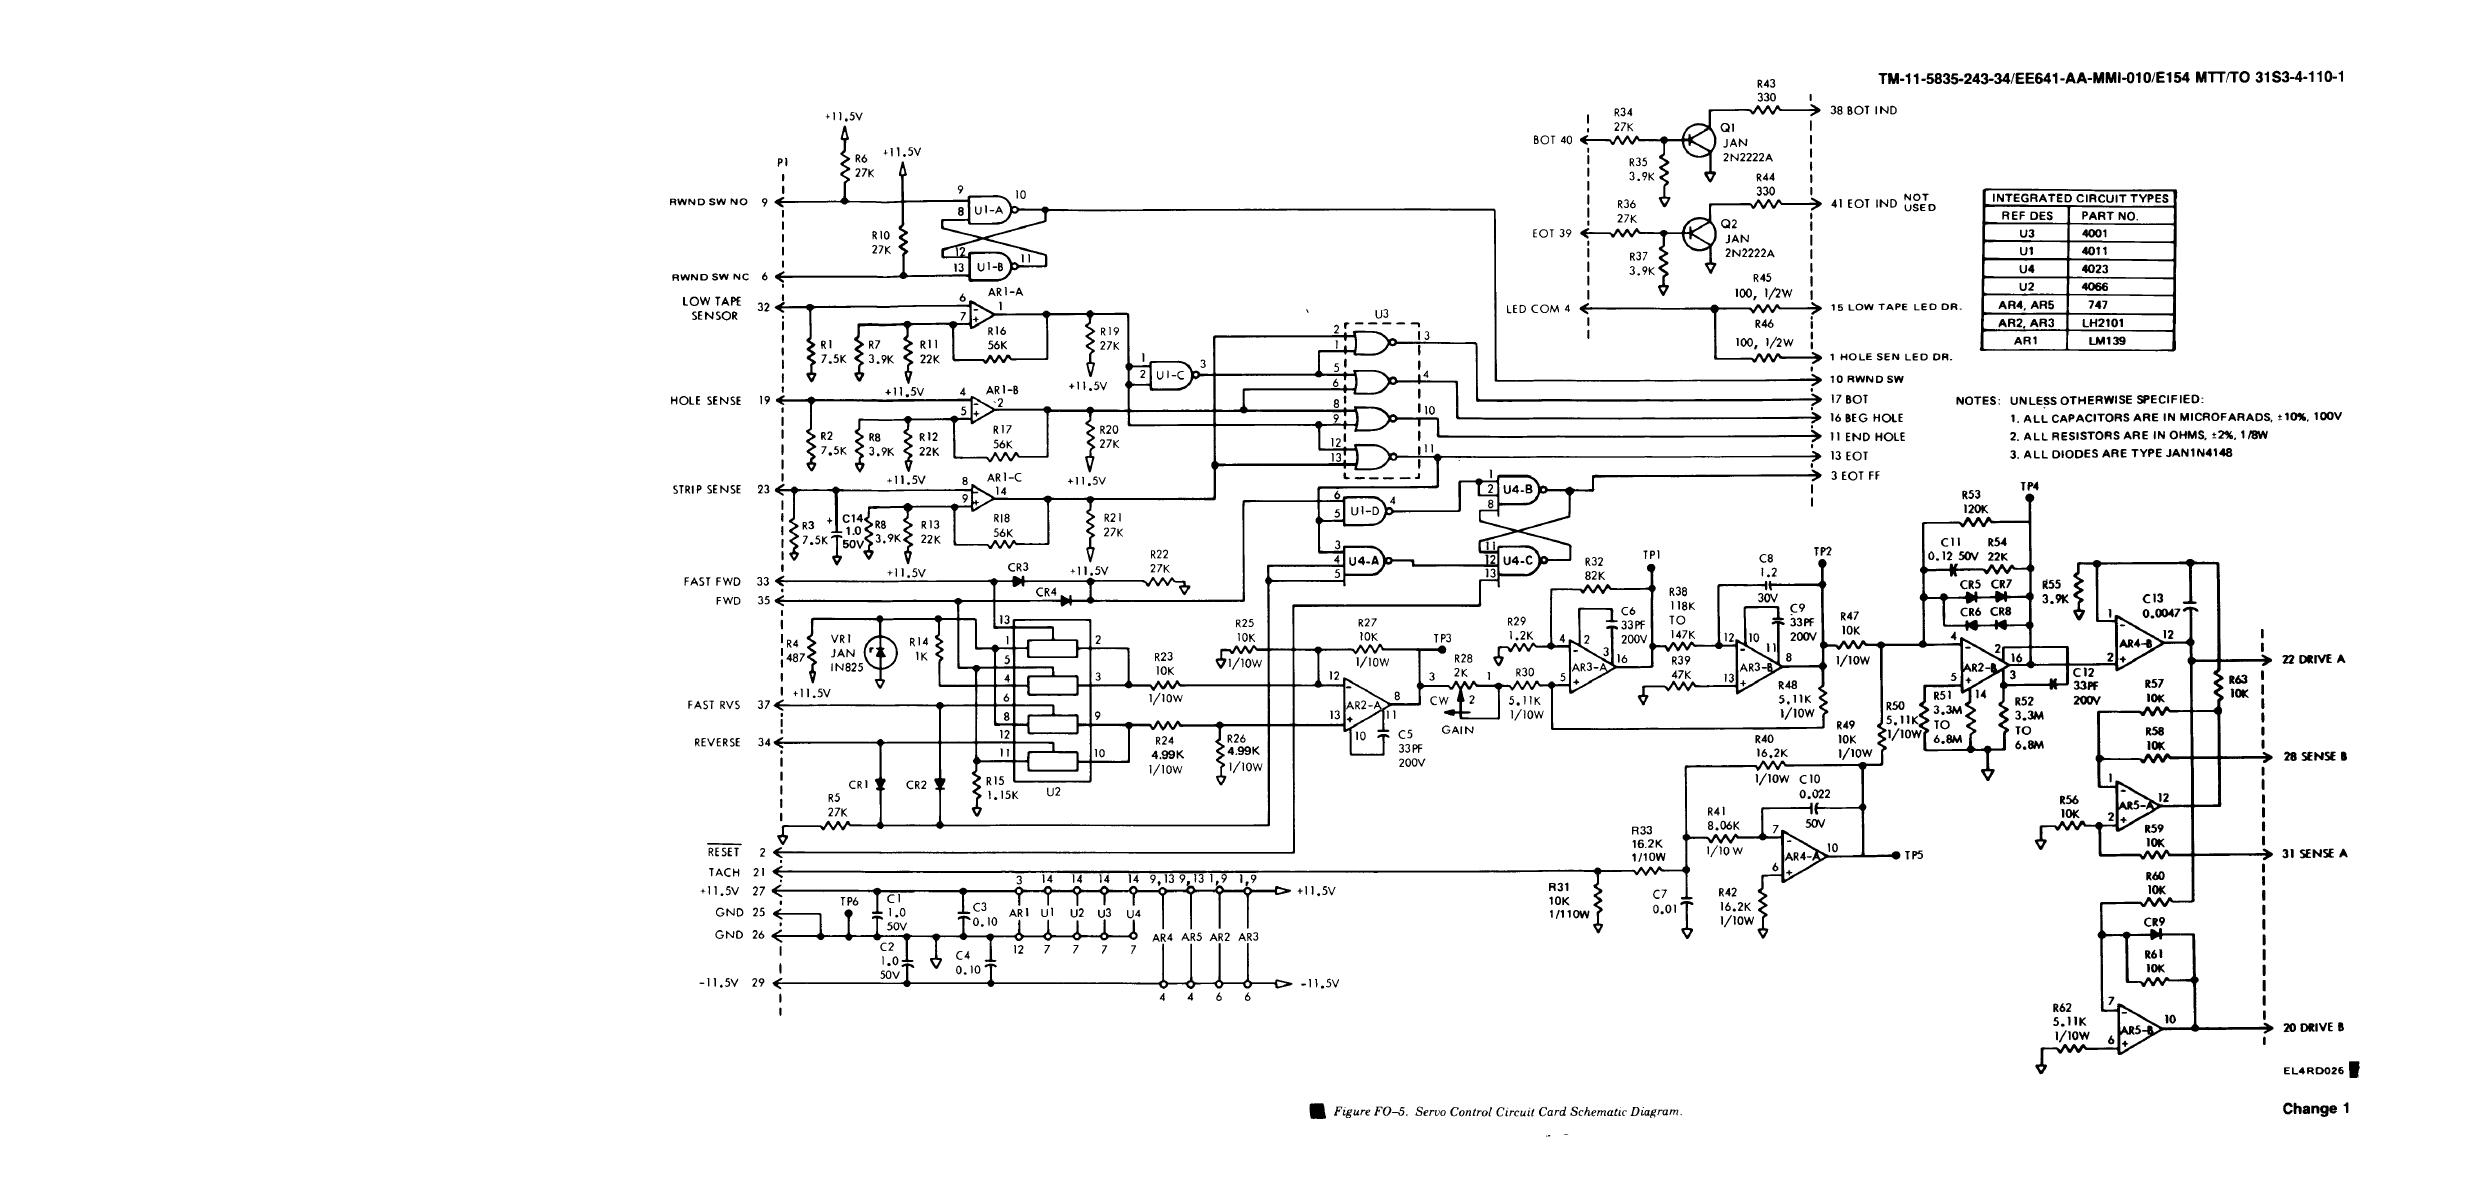 Playstation 4 Block Diagram